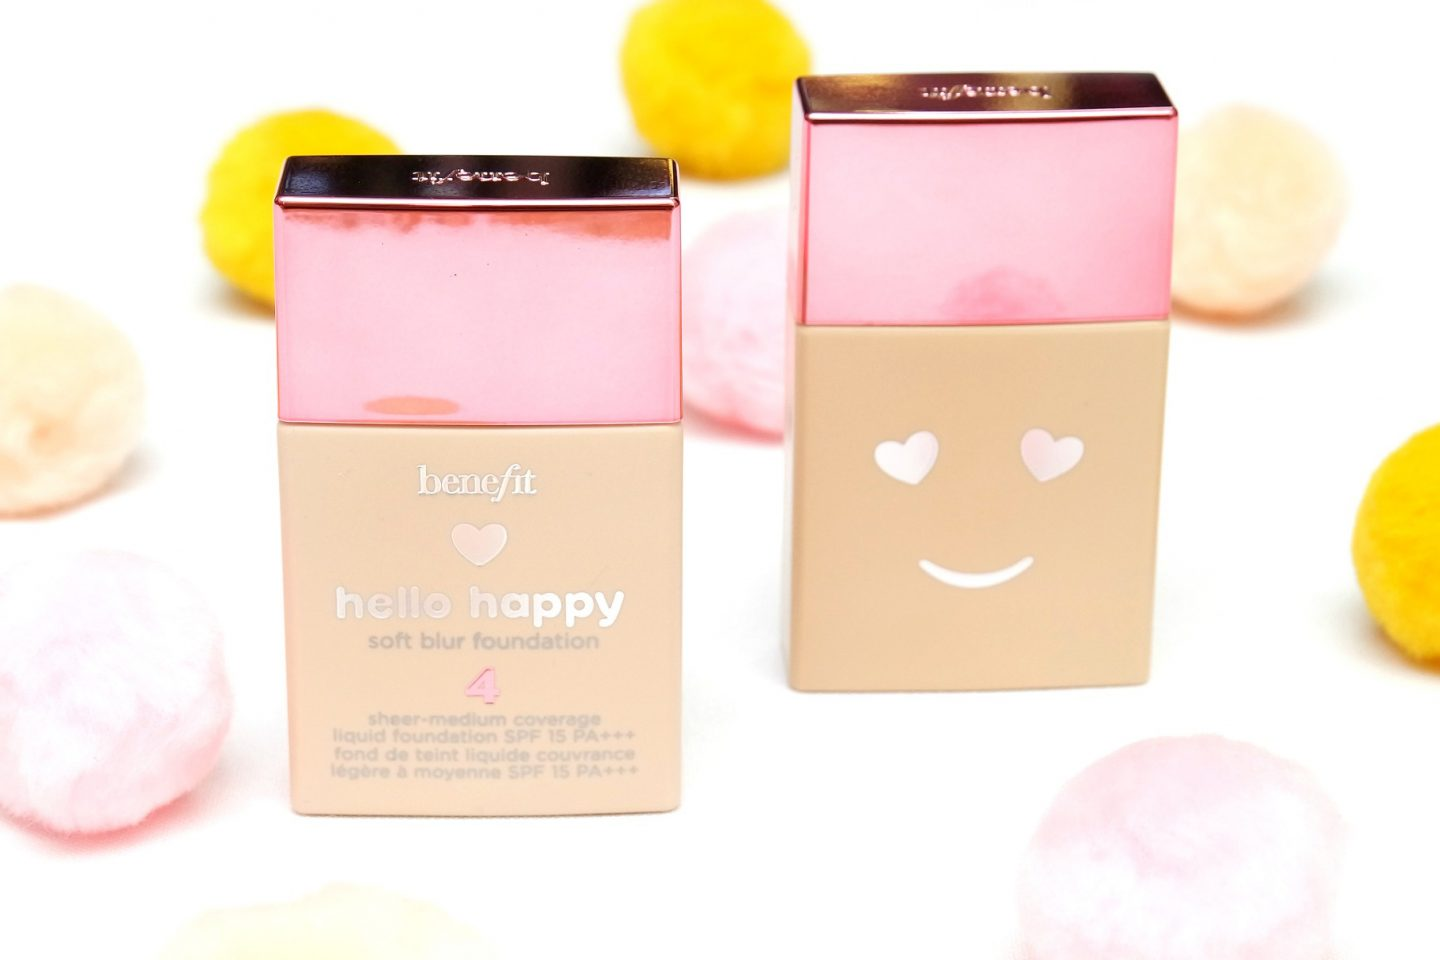 Benefit Hello Happy Soft Blur Foundation Review